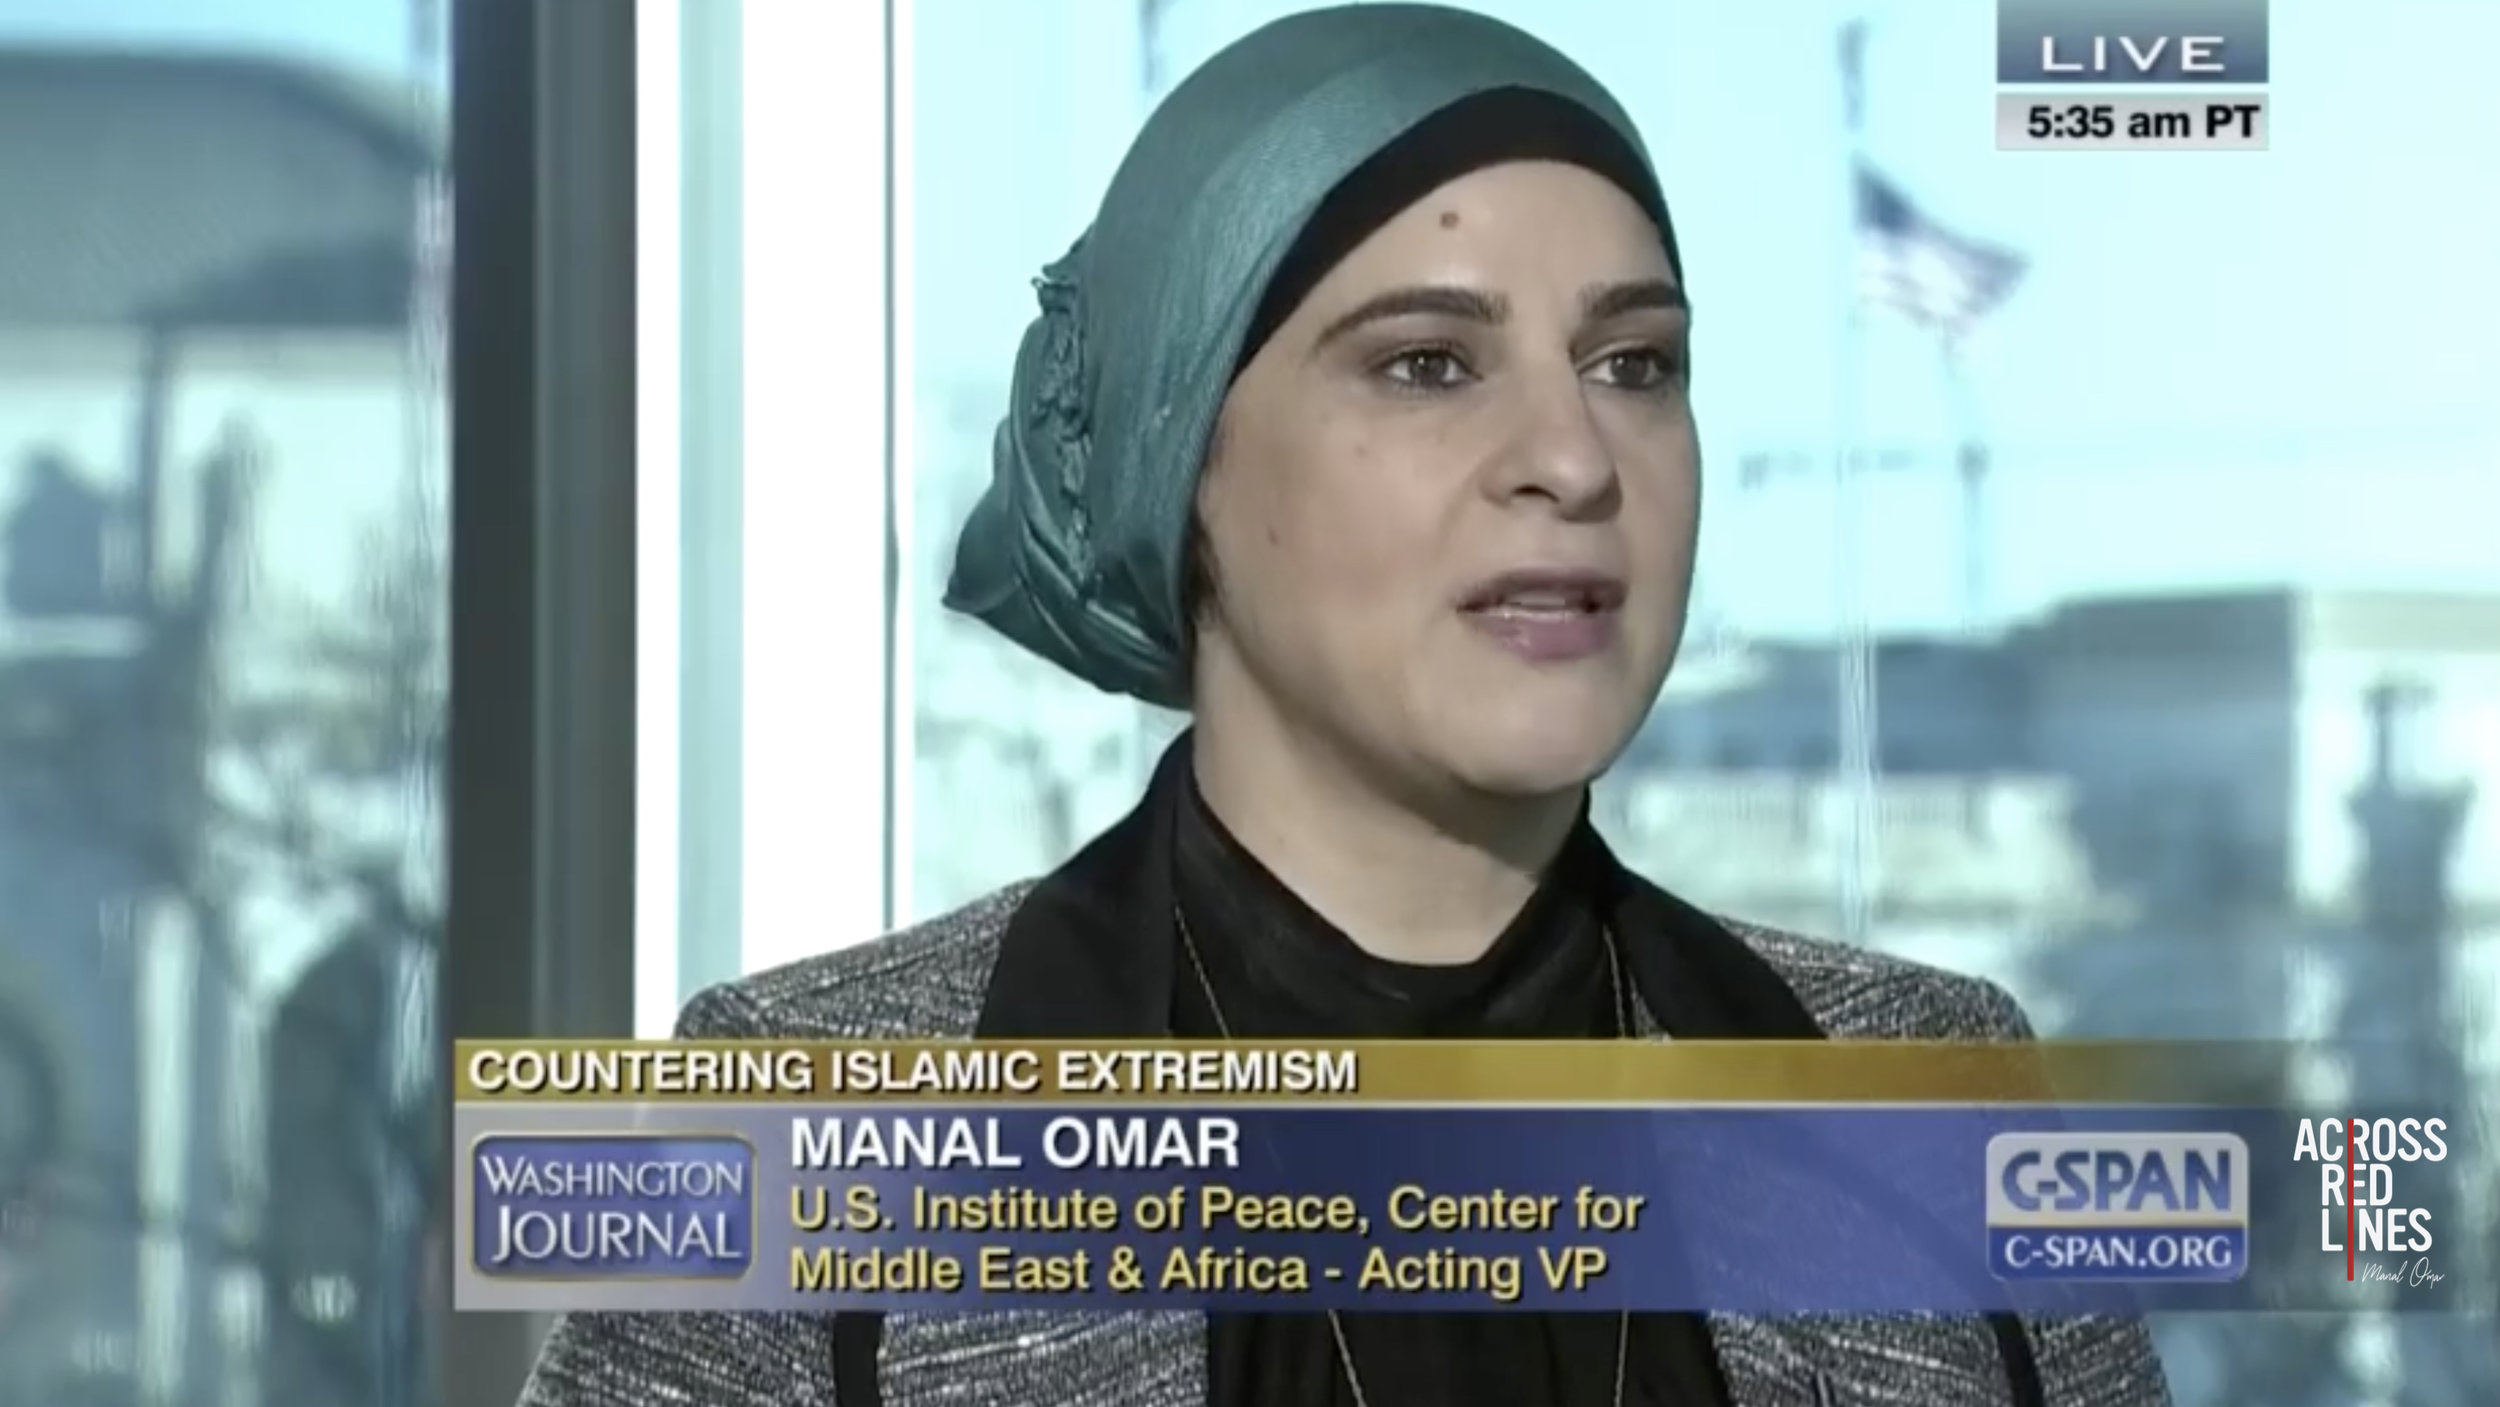 c-span-countering-islamic-extremism.jpg